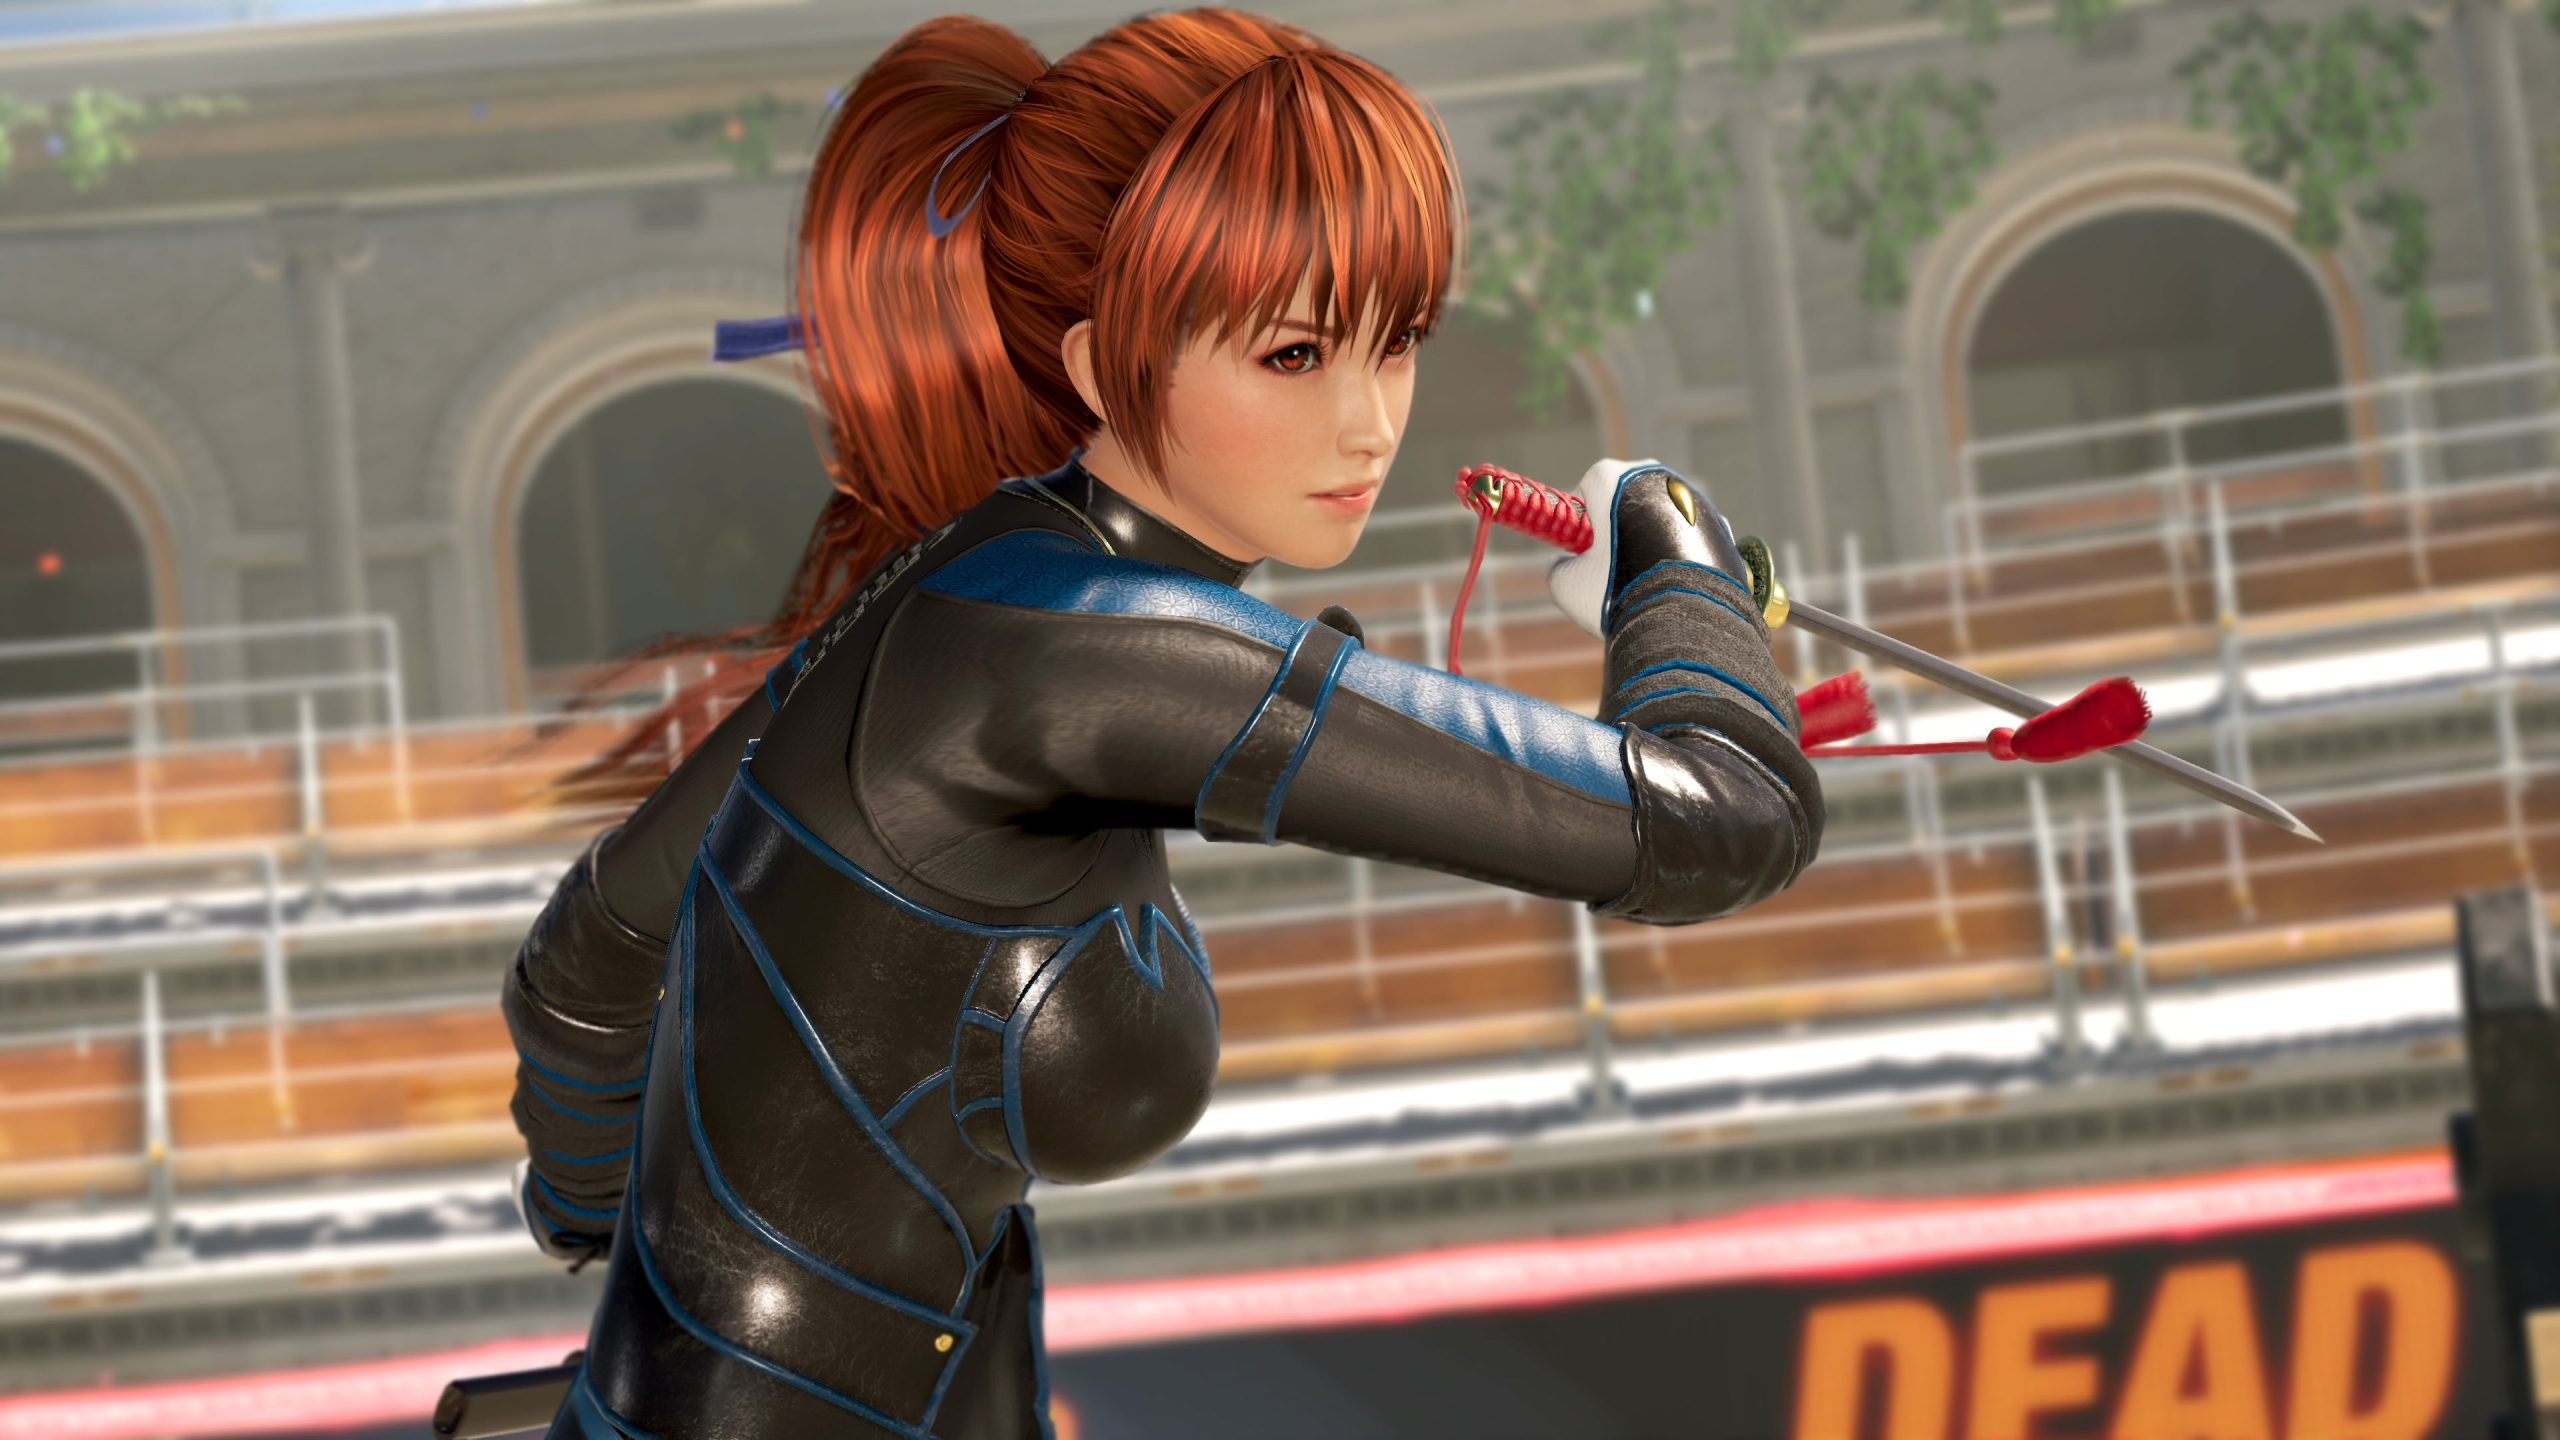 2560x1440 Dead Or Alive 6 Game 2019 1440p Resolution Wallpaper Hd